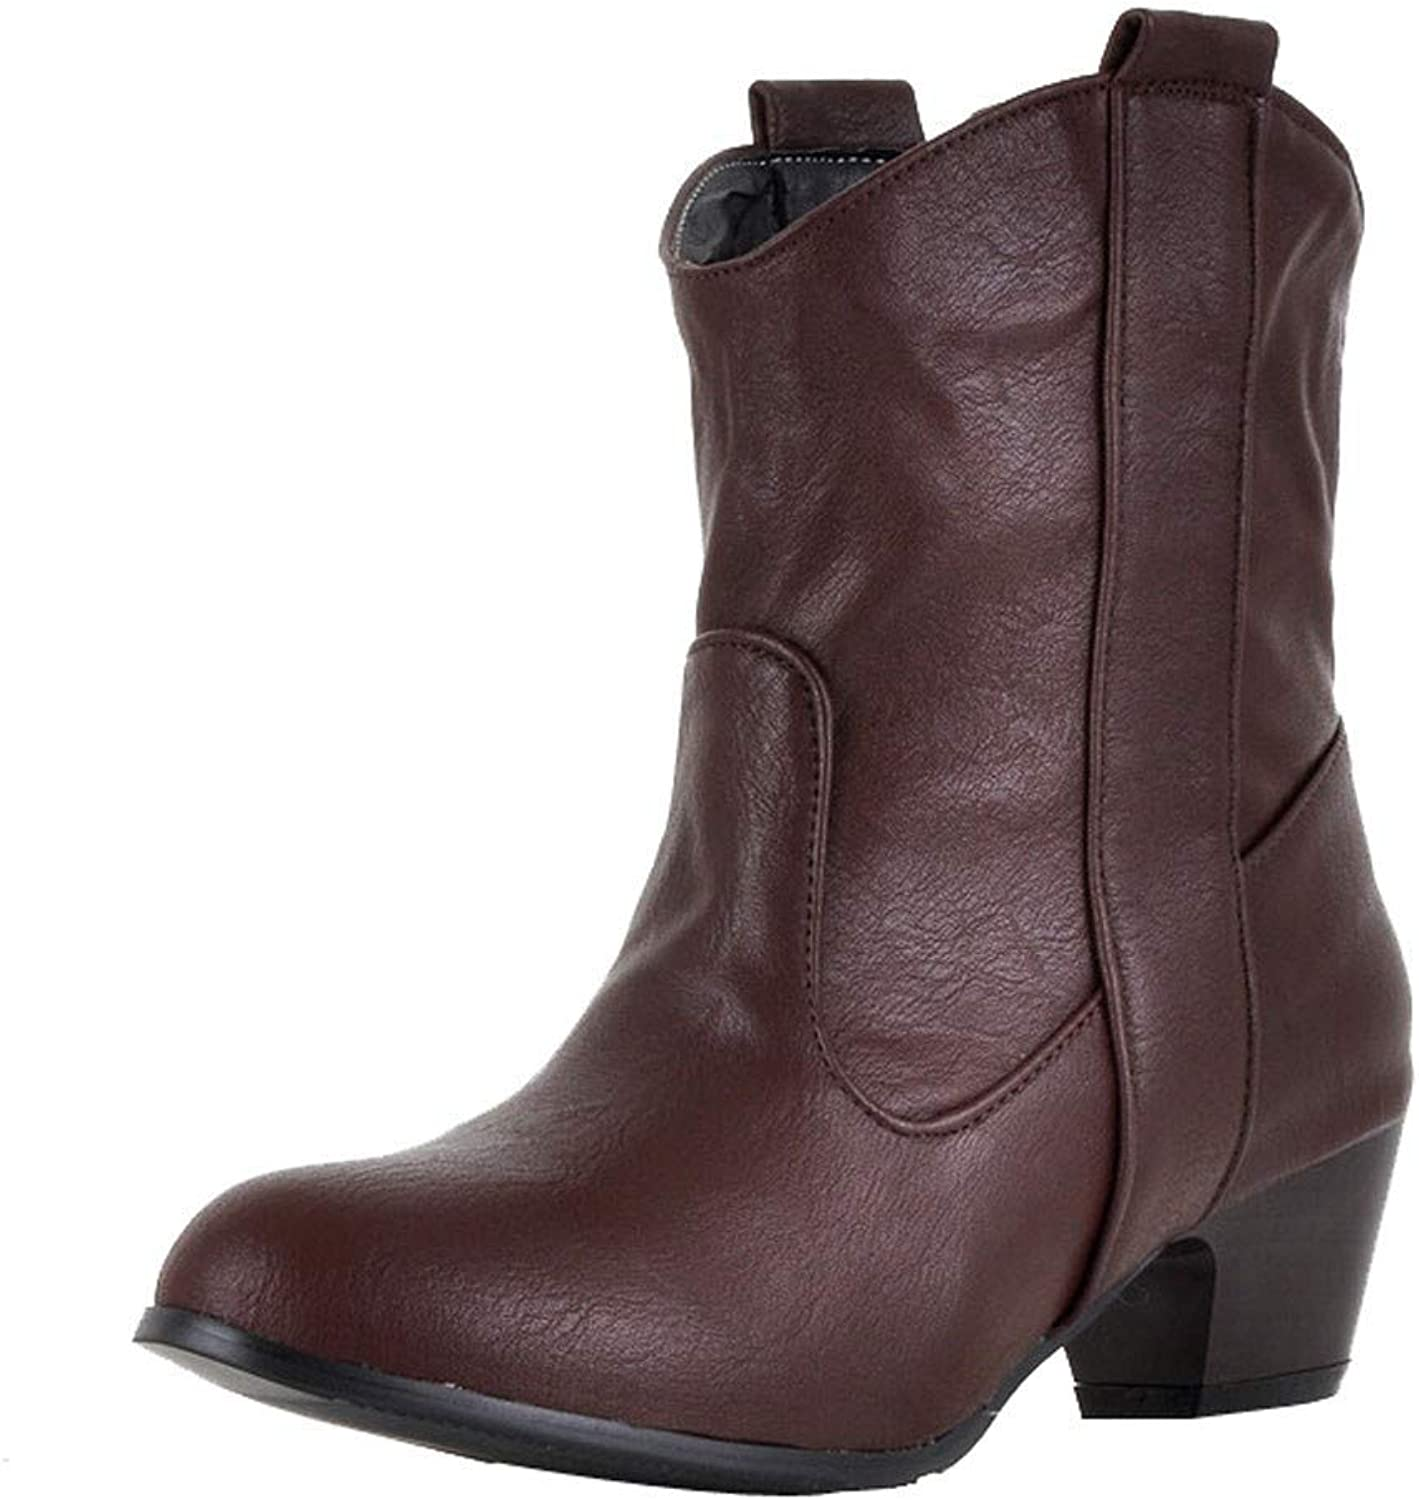 A-LING Women High Heel shoes Leather Boots Thick Ankle Boots